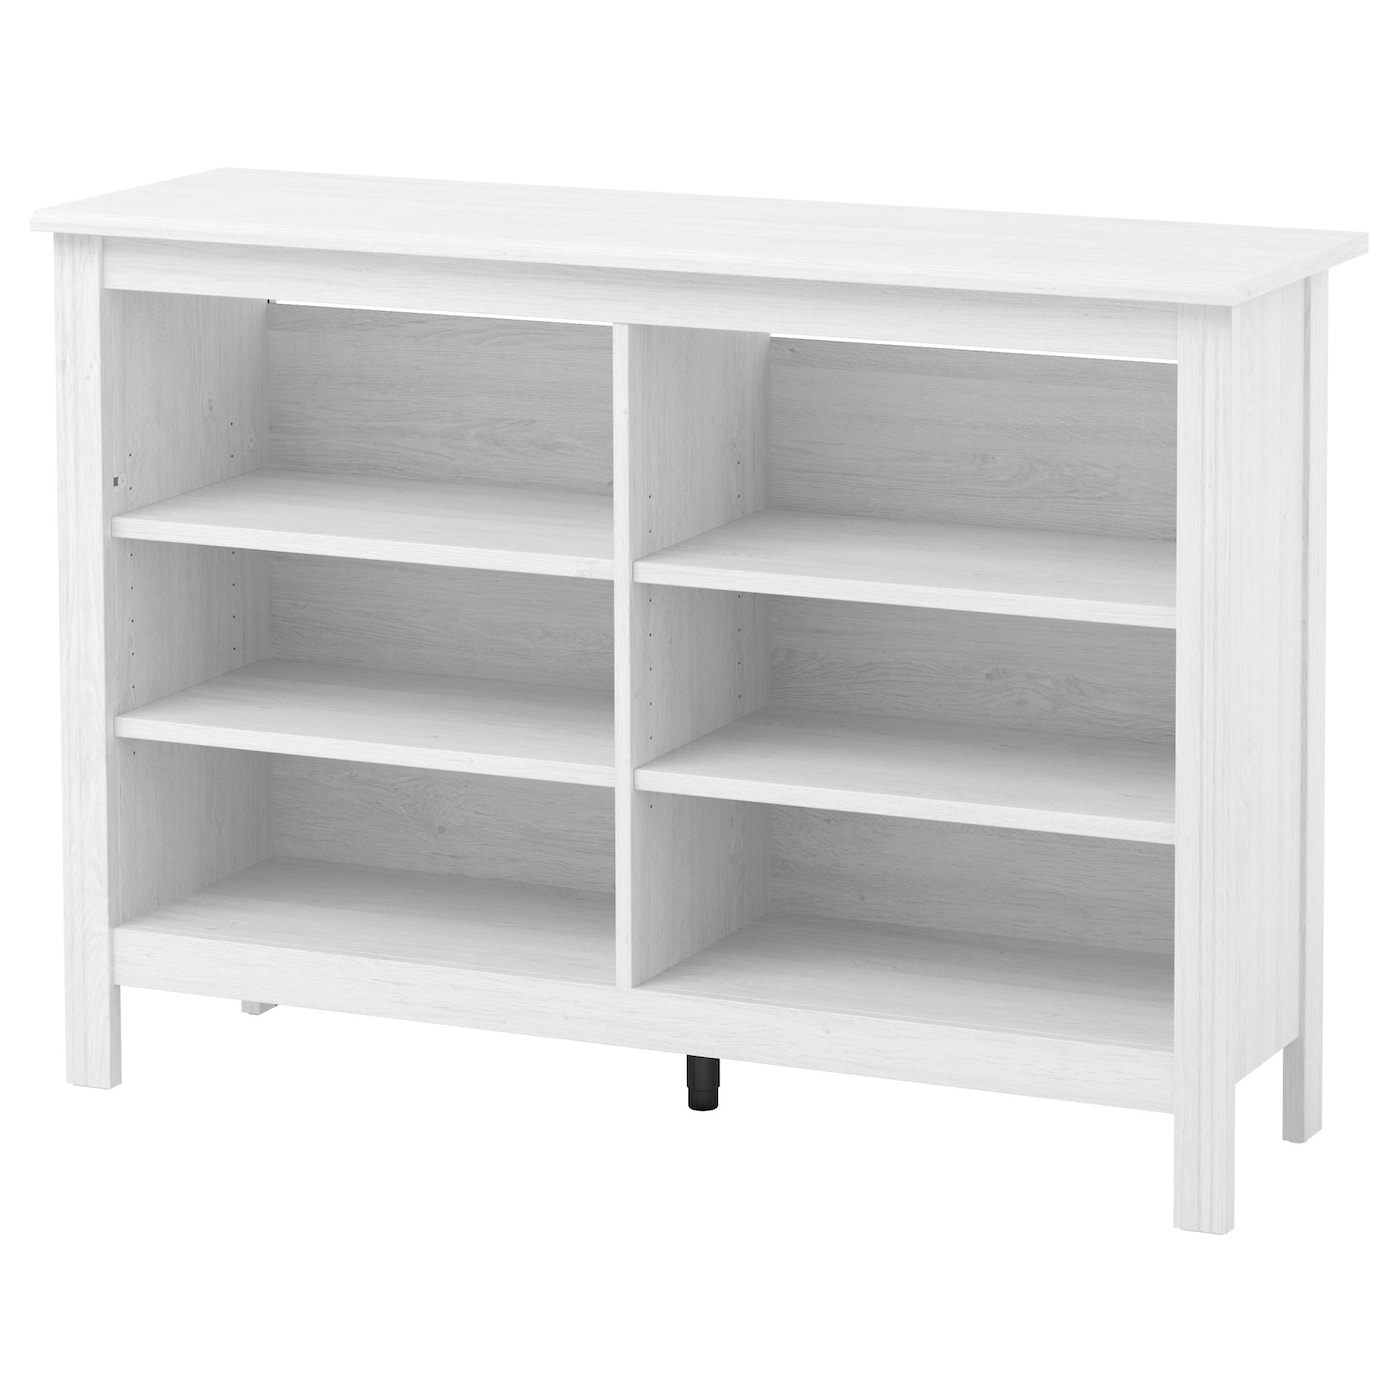 brusali tv bench white 120 x 85 cm ikea. Black Bedroom Furniture Sets. Home Design Ideas